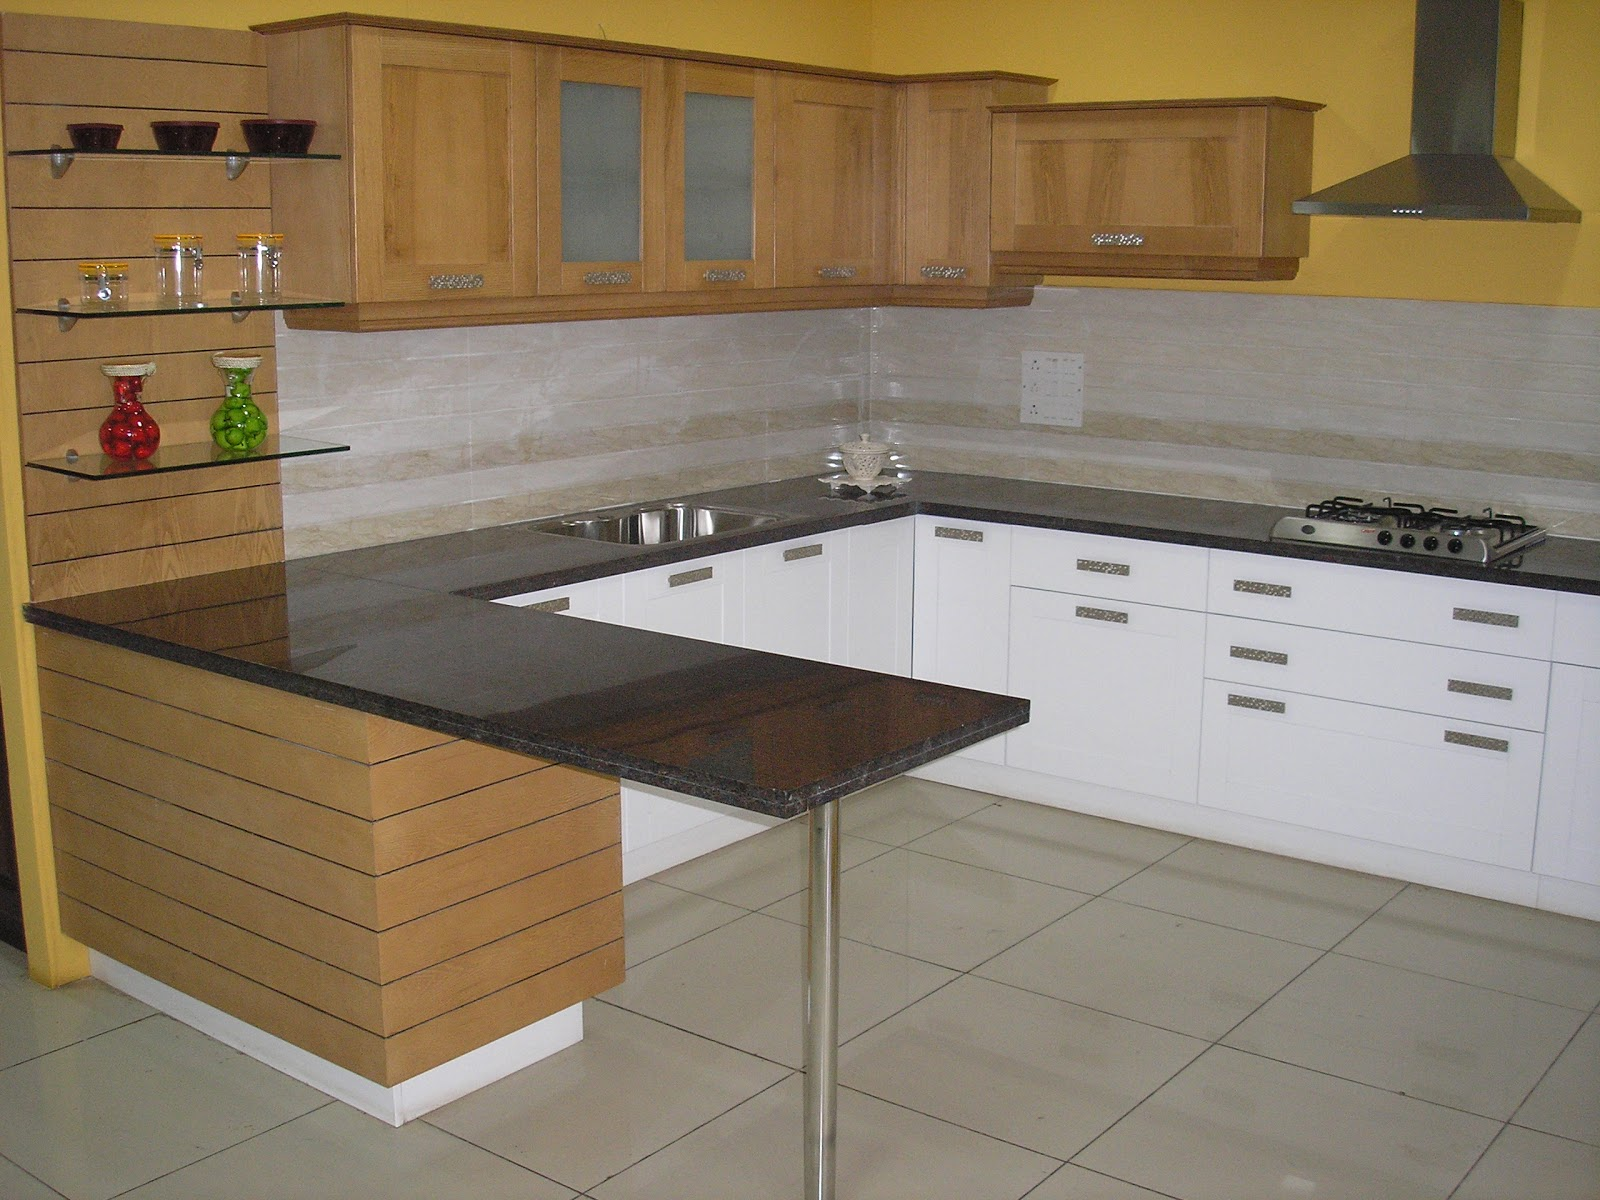 Furniture Guru: Modular Kitchens in Bangalore, Interview of Rajeev